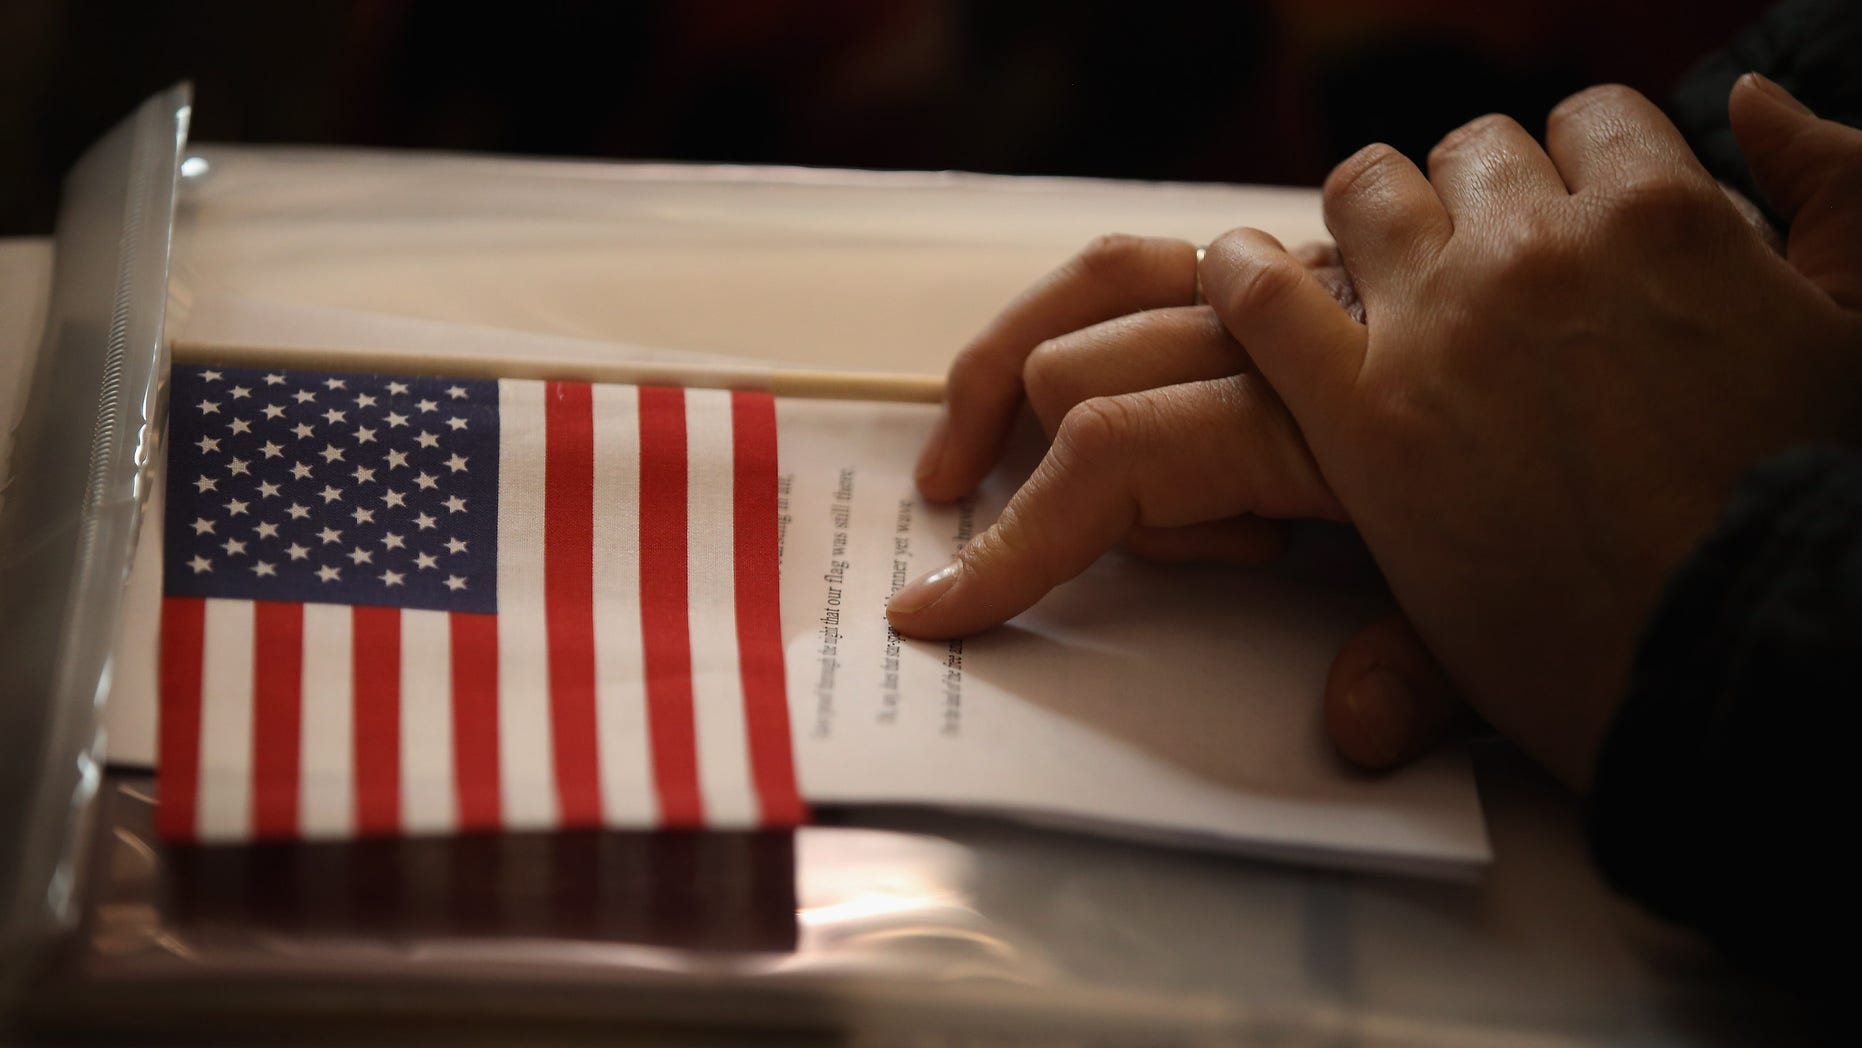 CHICAGO, IL - JULY 03: A new U.S. citizens holds and American flag along with her citizenship papers as she participates in a naturalization ceremony at the Chicago Cultural Center on July 3, 2013 in Chicago, Illinois. The ceremony, which recognized 71 new citizens from 32 countries, was one of more than 100 naturalization ceremonies held across the country and around the world to celebrate Independence Day.  (Photo by Scott Olson/Getty Images)